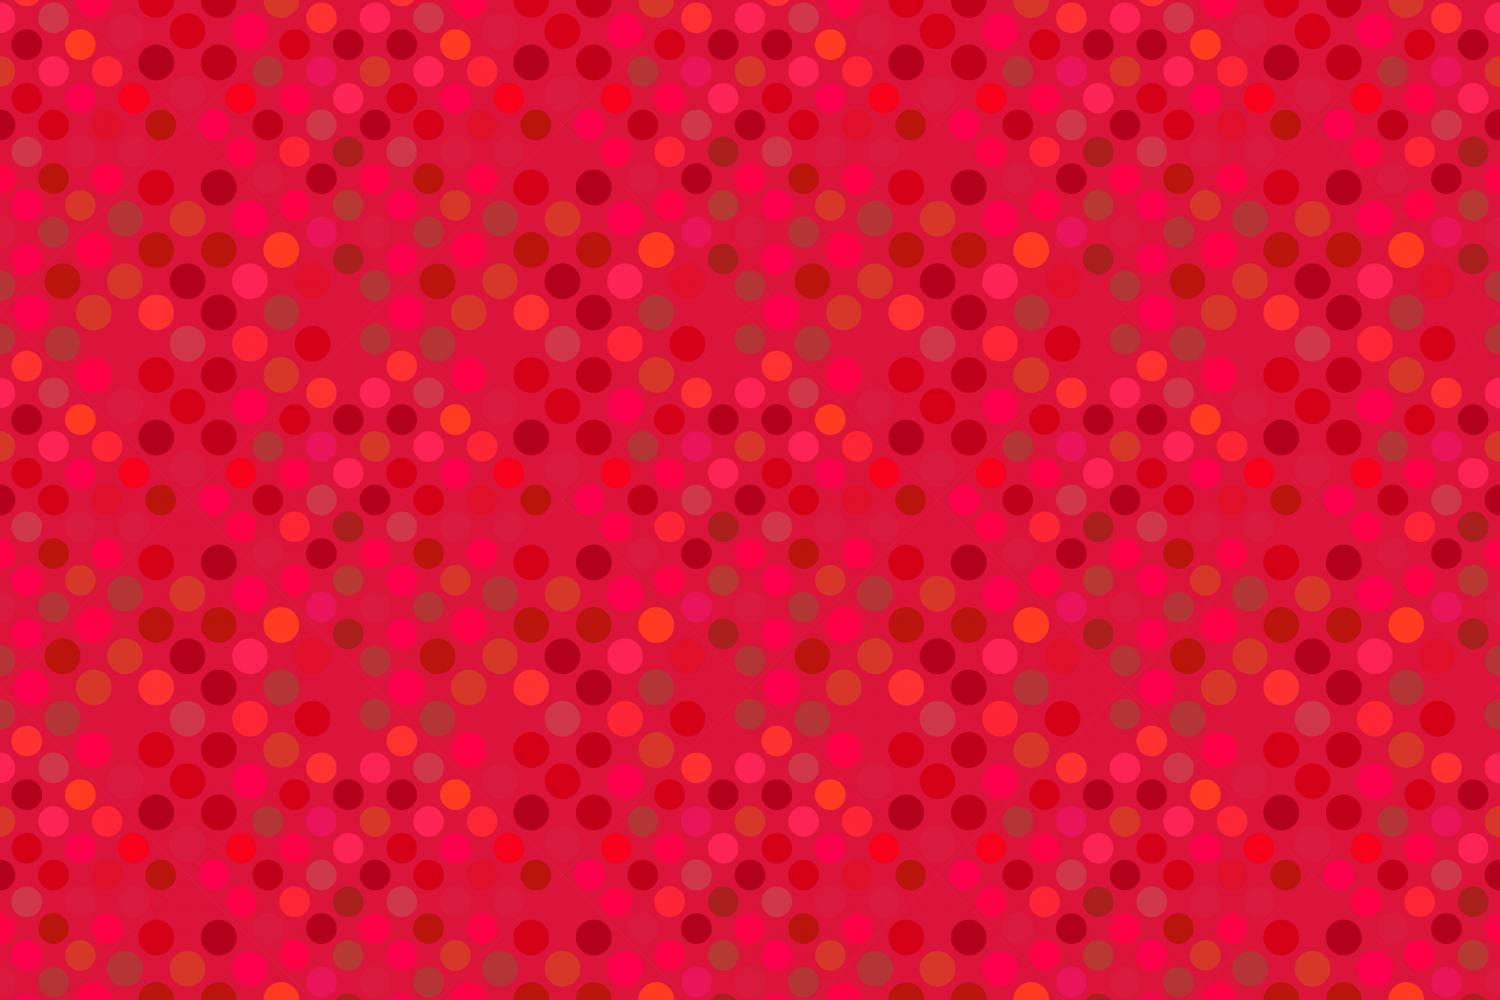 24 Seamless Red Dot Patterns example image 23